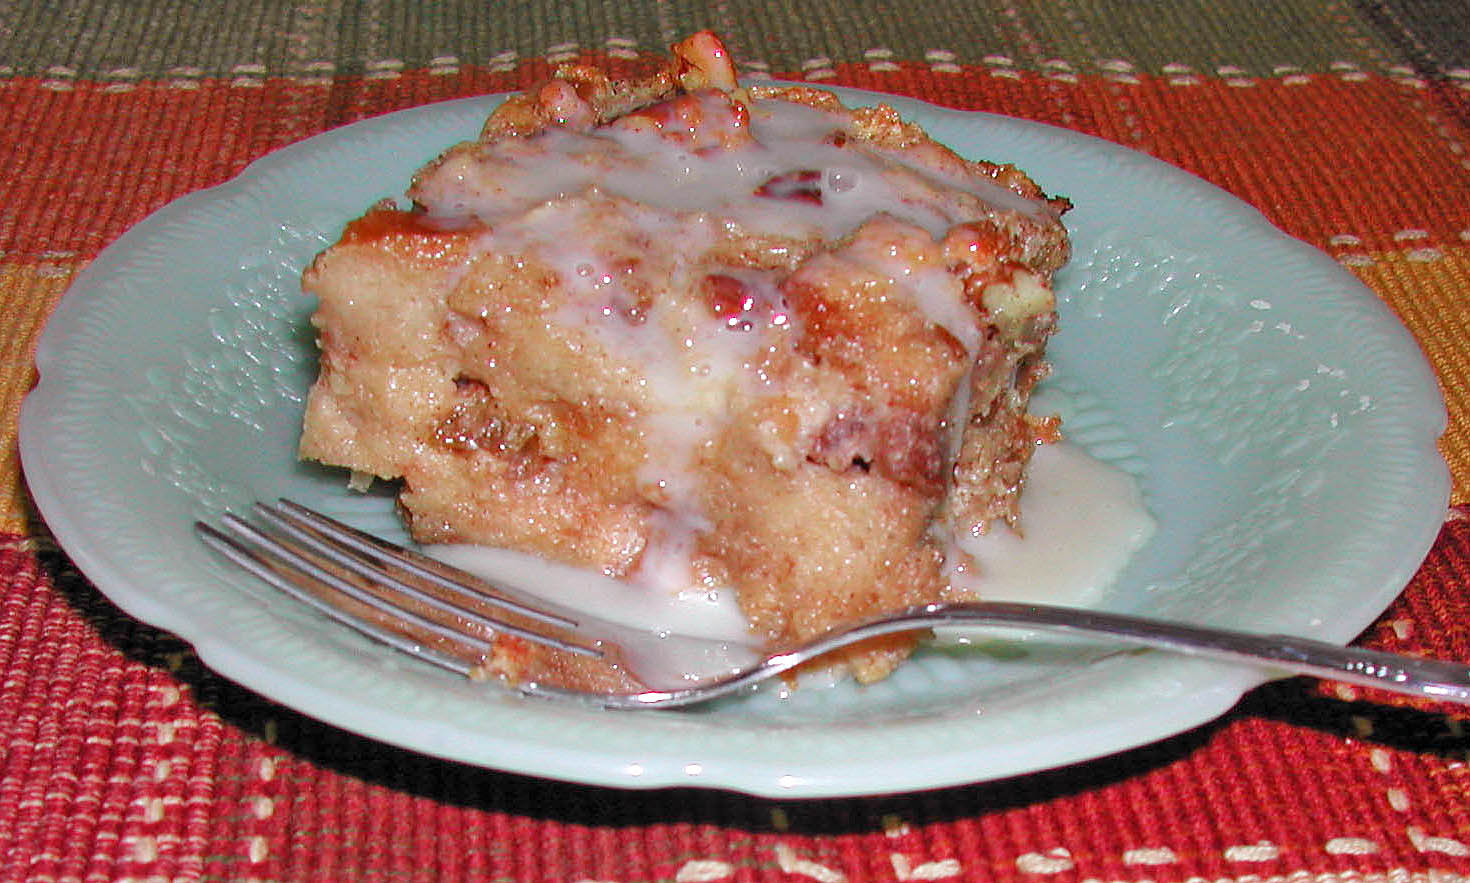 The Iowa Housewife: Bread Pudding with Rum Sauce